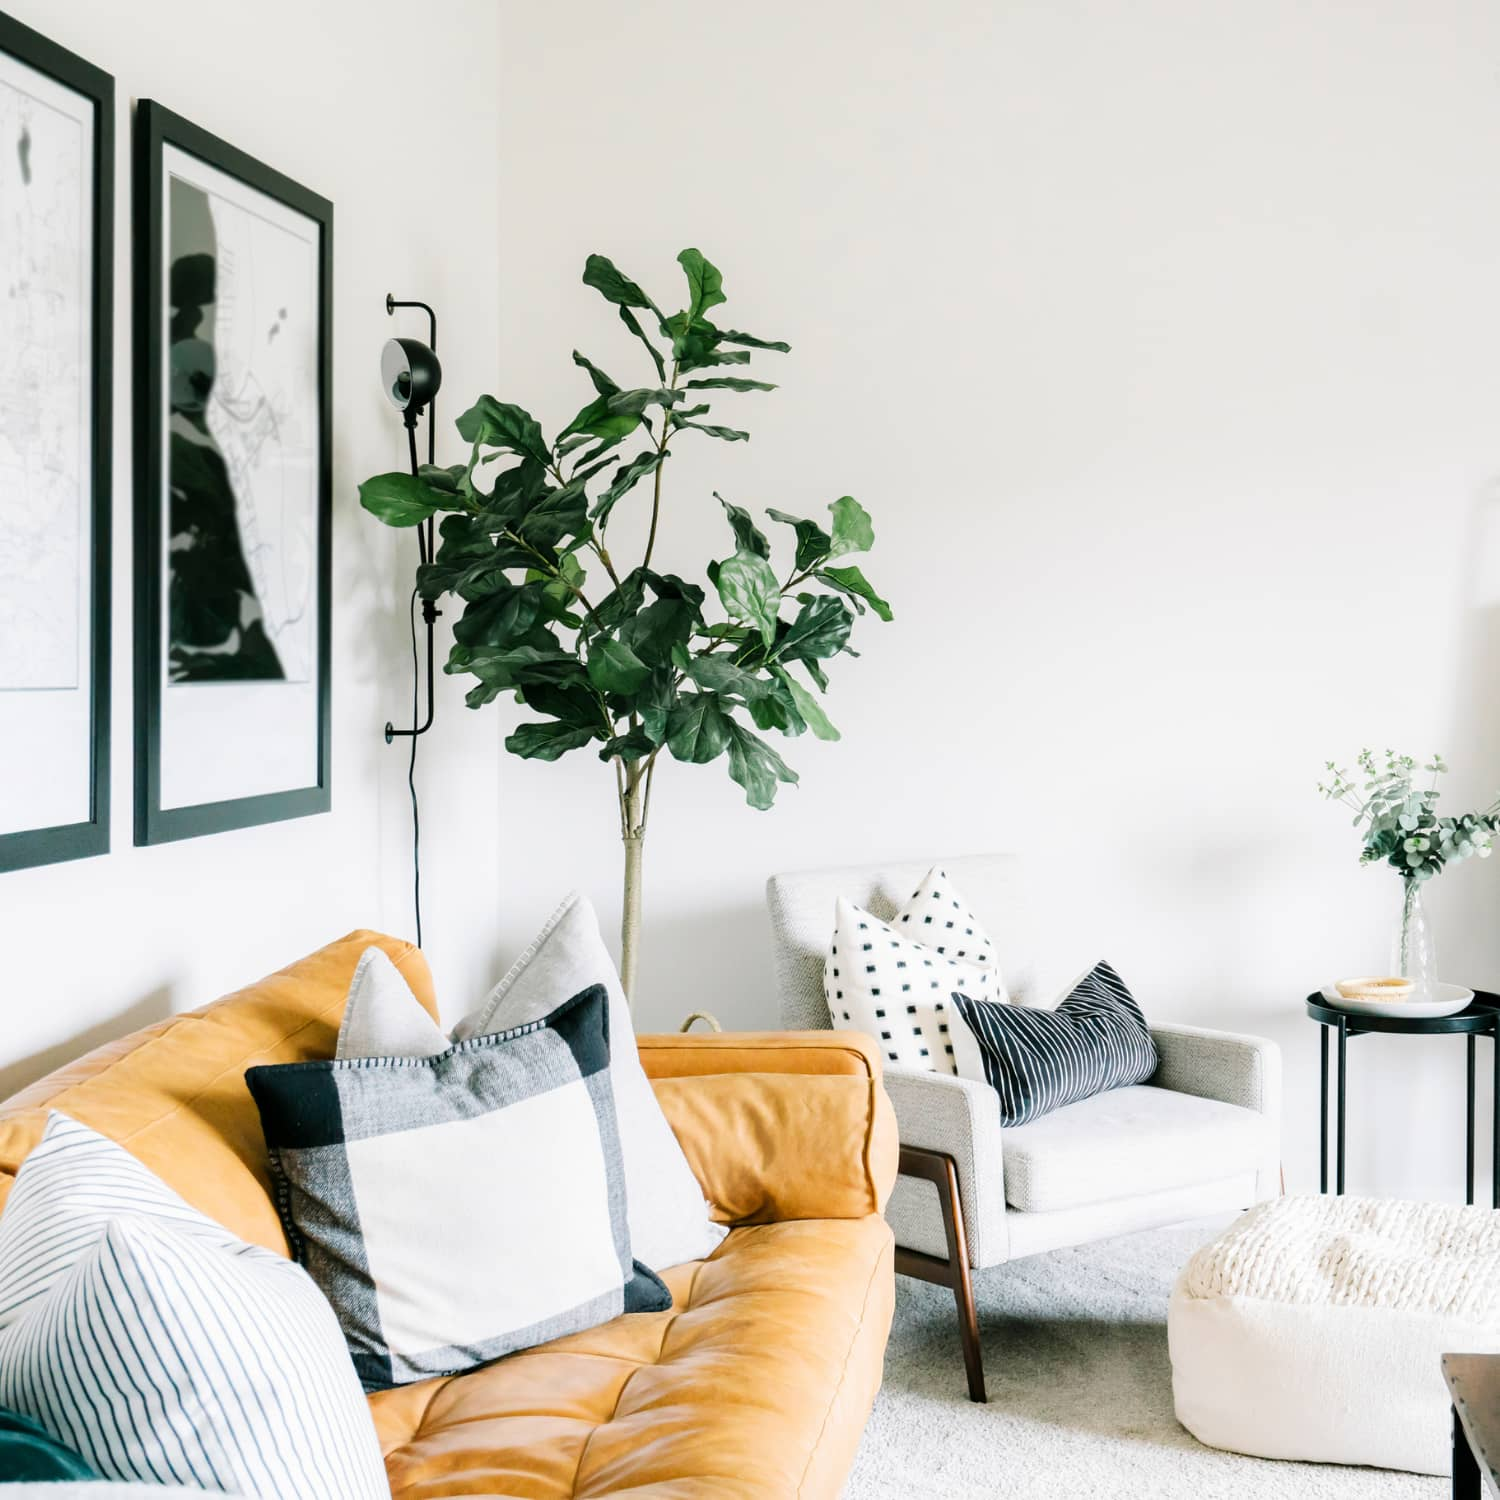 A minimalist living room with a mustard colored sofa, a chair, a plant, and pictures on the wall.